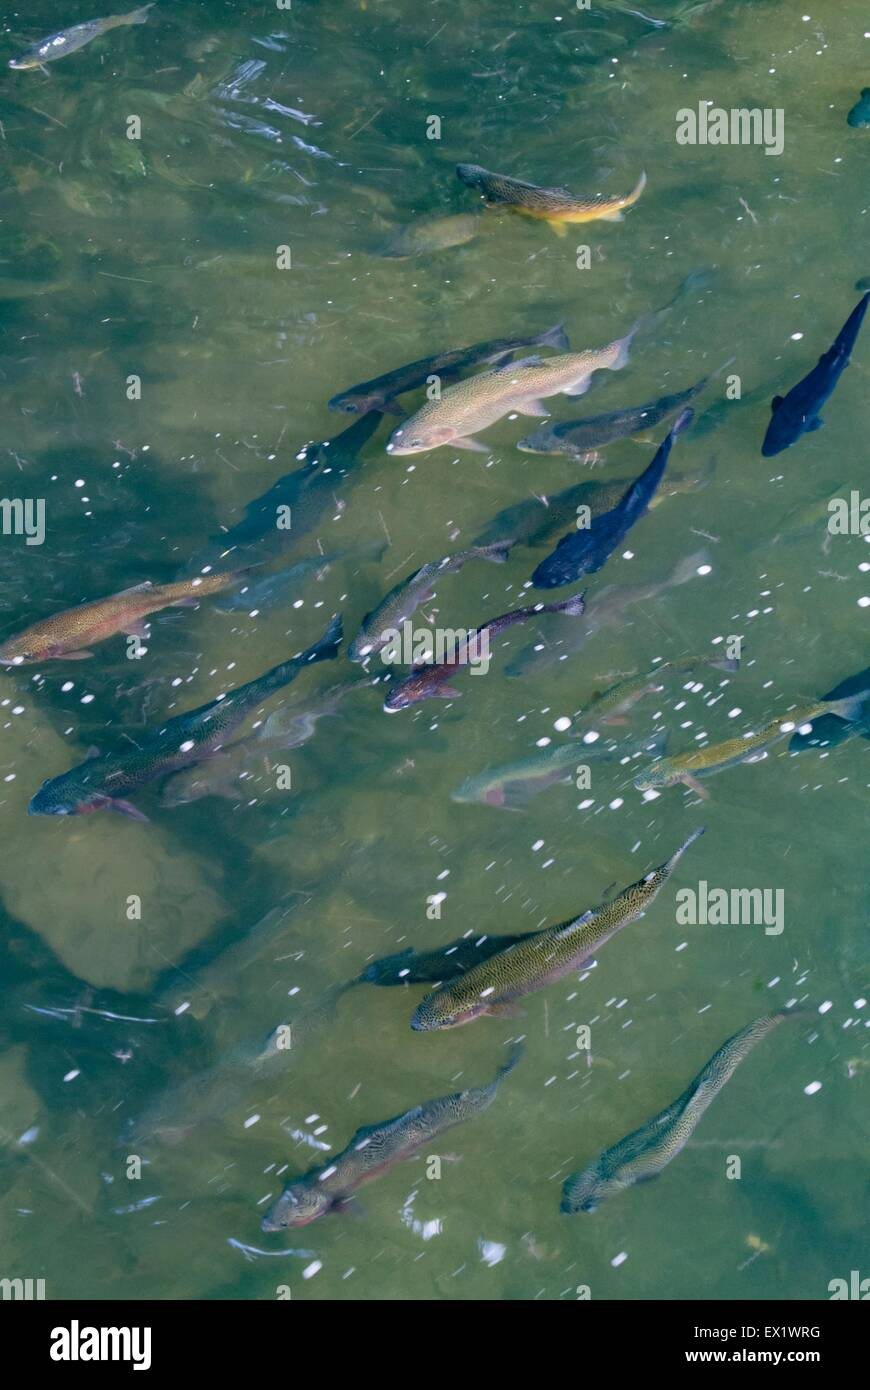 Rainbow trout shoal in freshwater - Stock Image